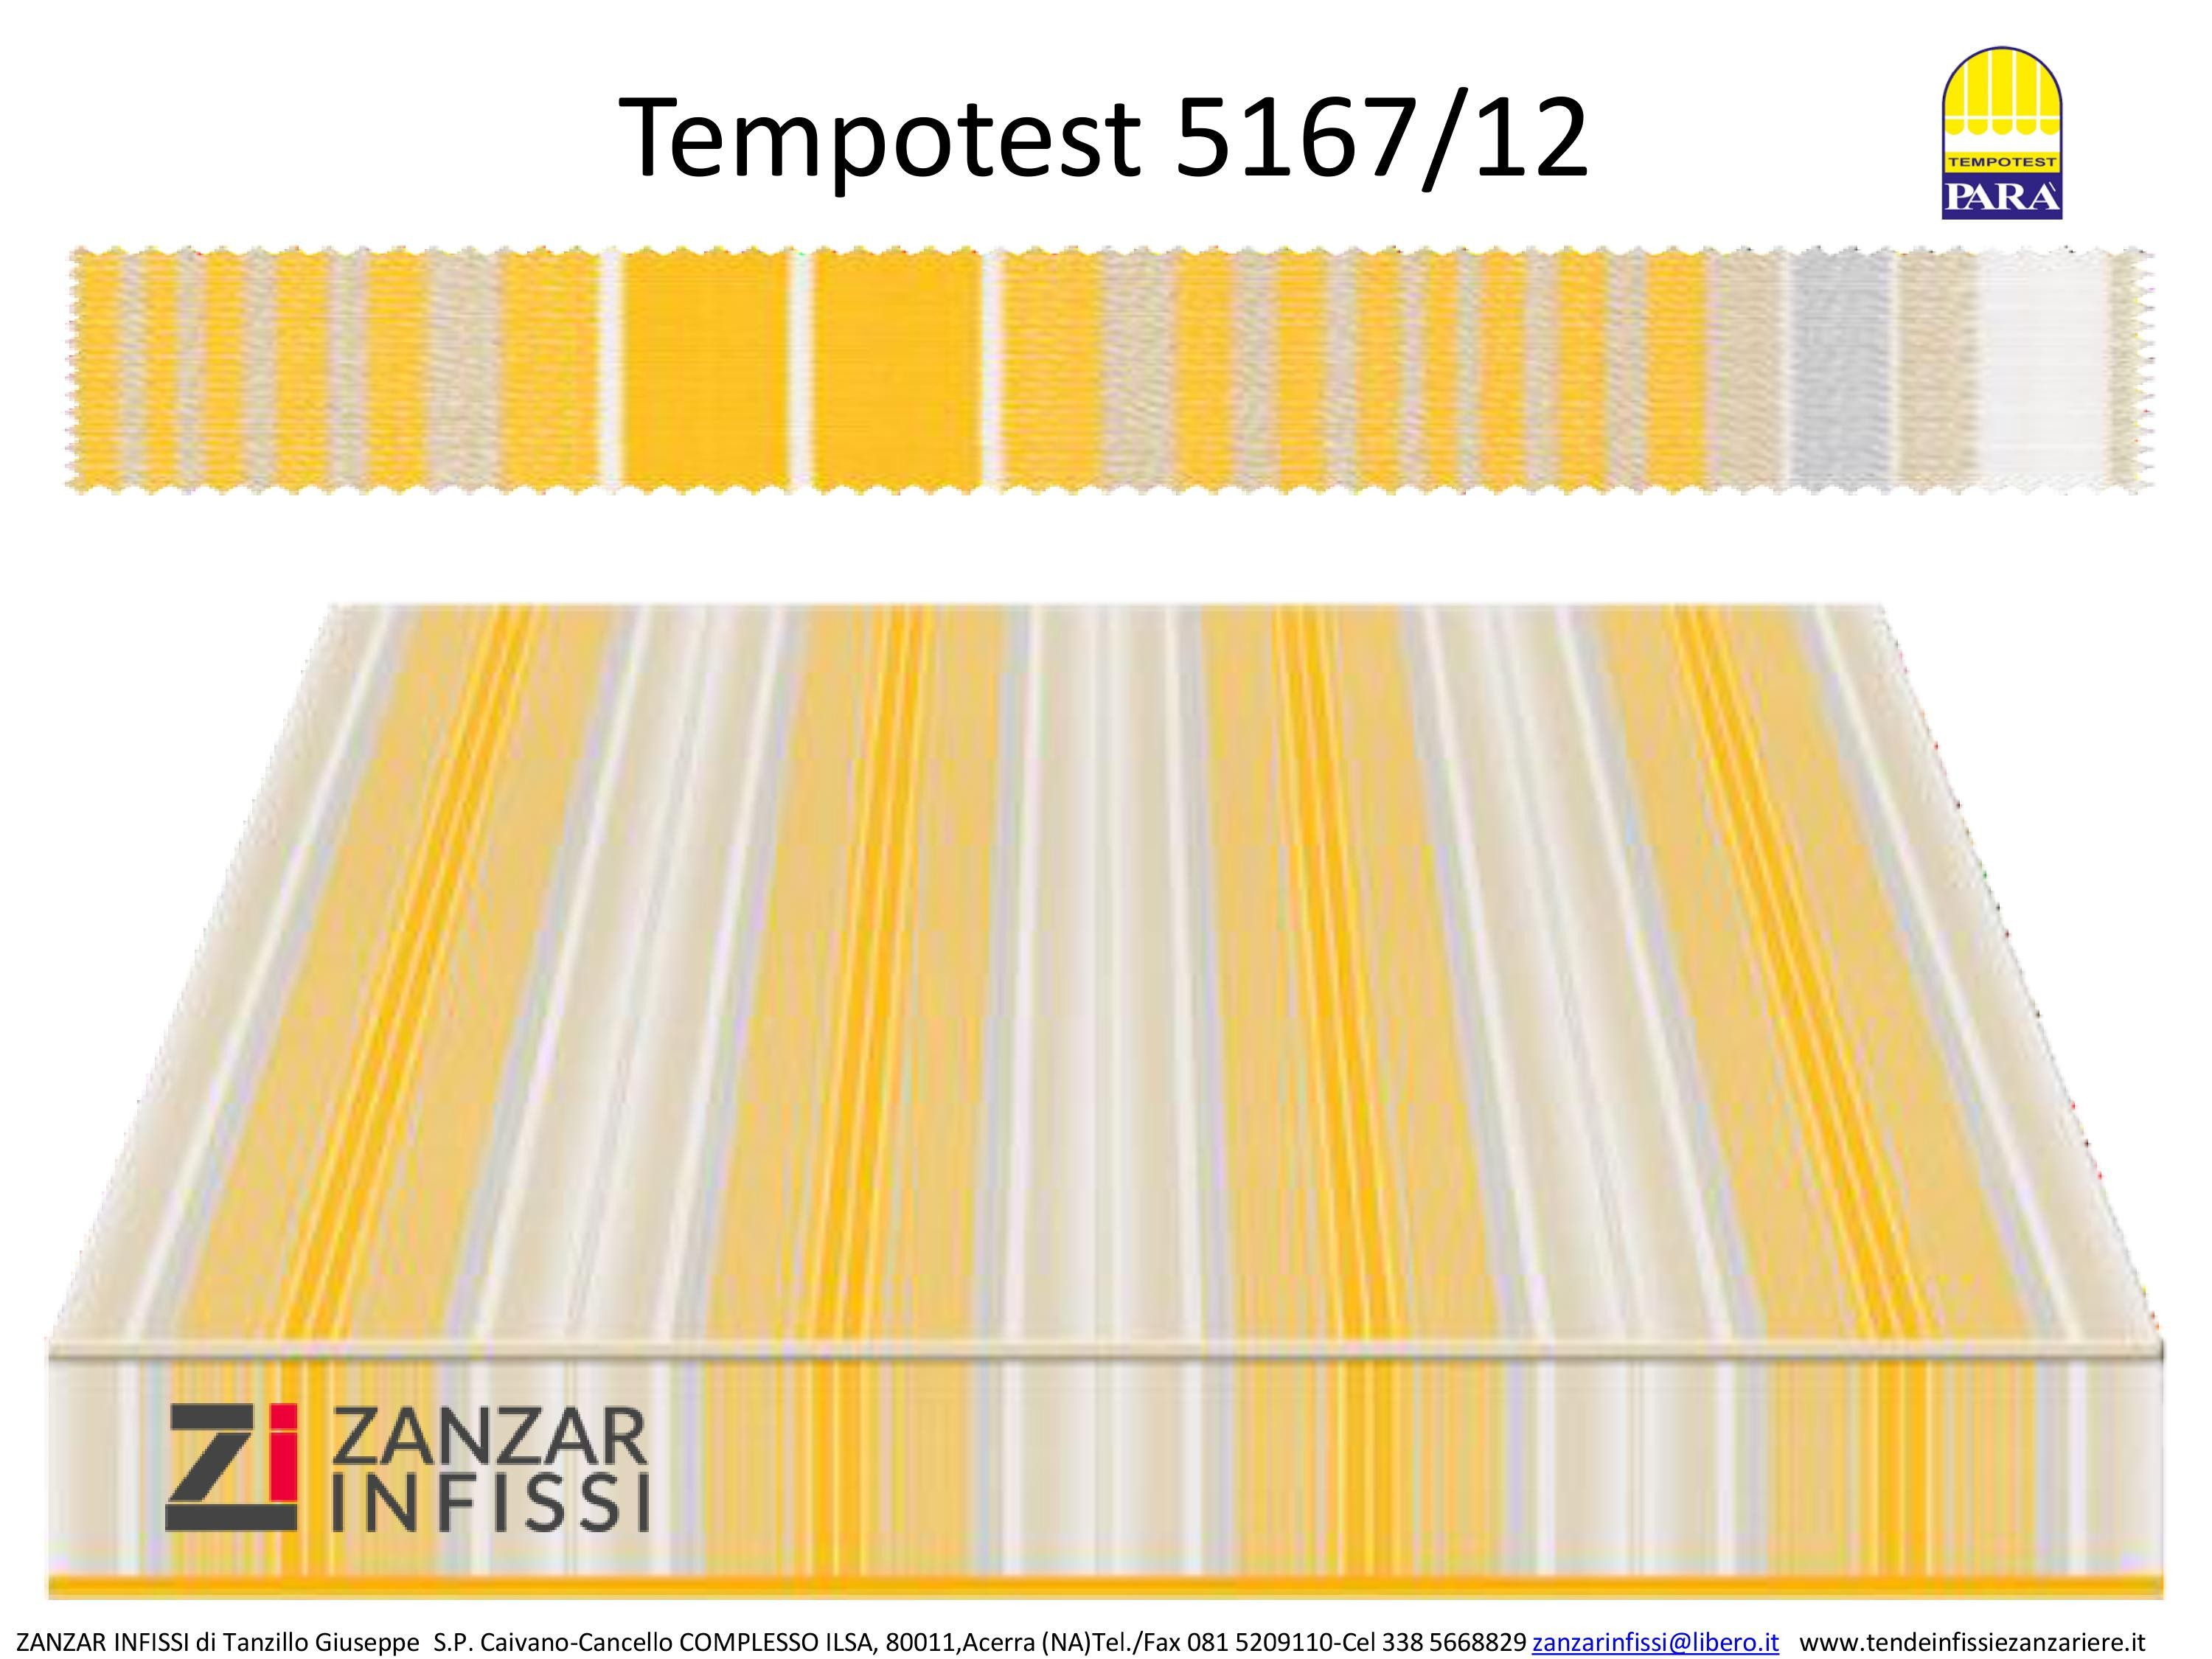 Tempotest 5167/12